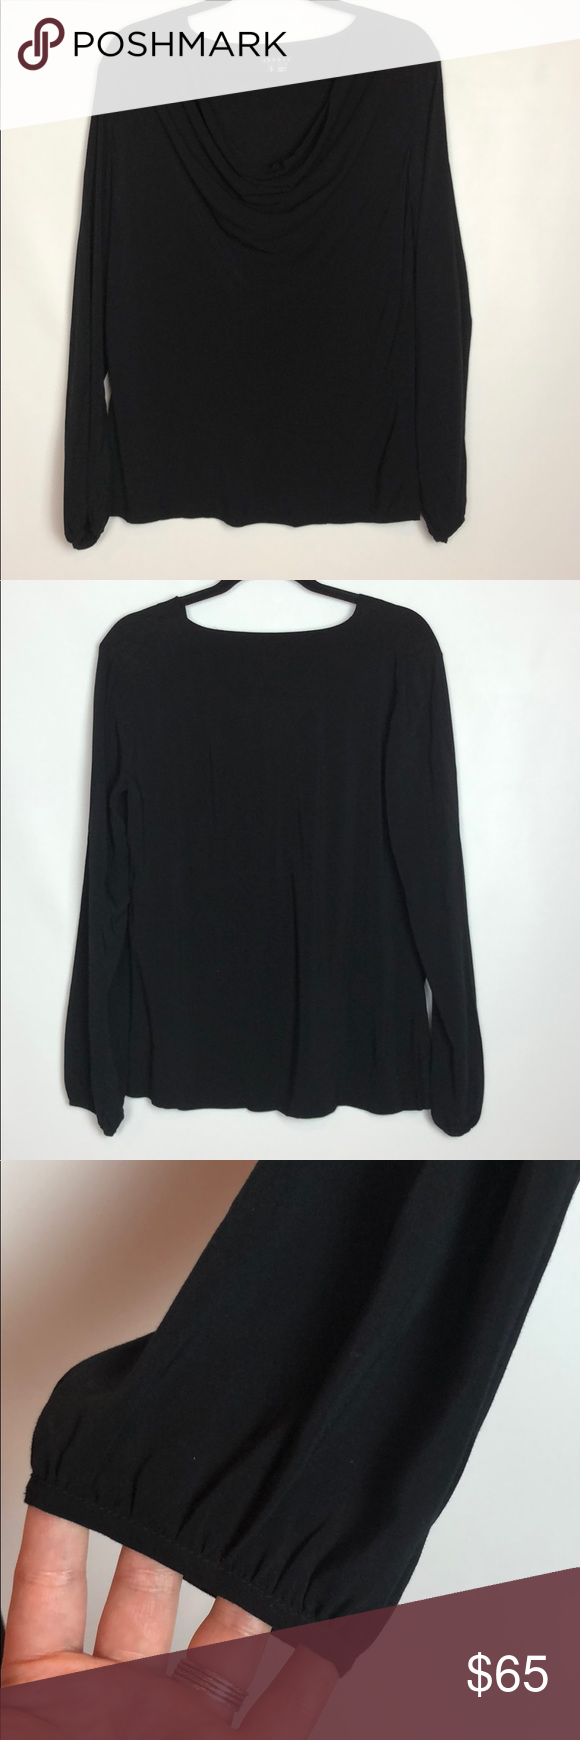 "1a115e4fdd59d3 Theory Black Delvinia Rove Cowl Neck Top Theory Black Delvinia Rove Cowl  Neck Top Size small 100% rayon Good condition Pit to pit 19"" Length 25"" Theory  Tops ..."